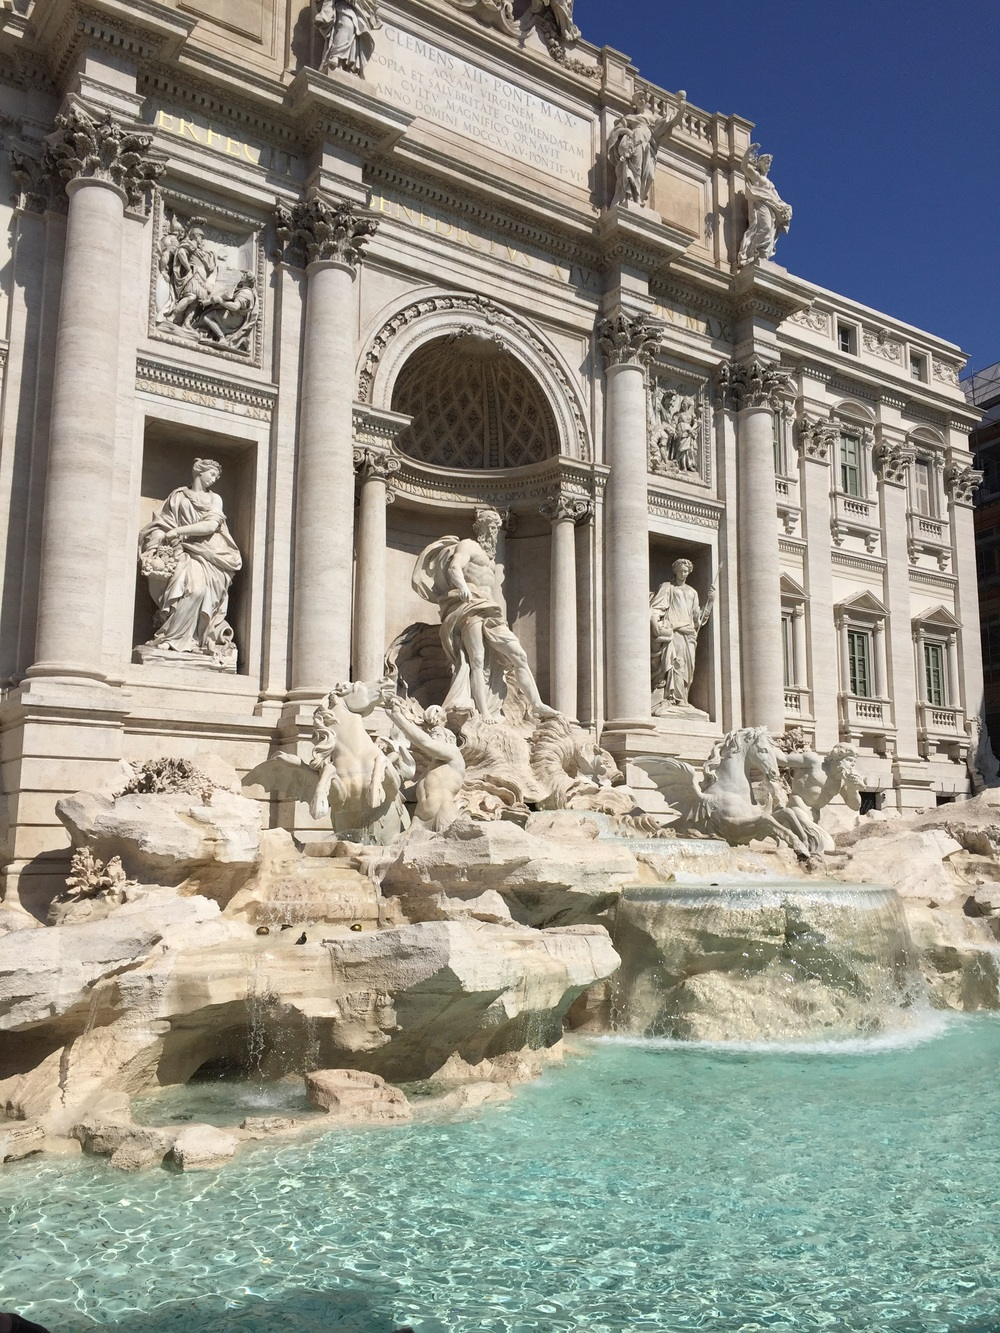 The Trevi Fountain, open again!